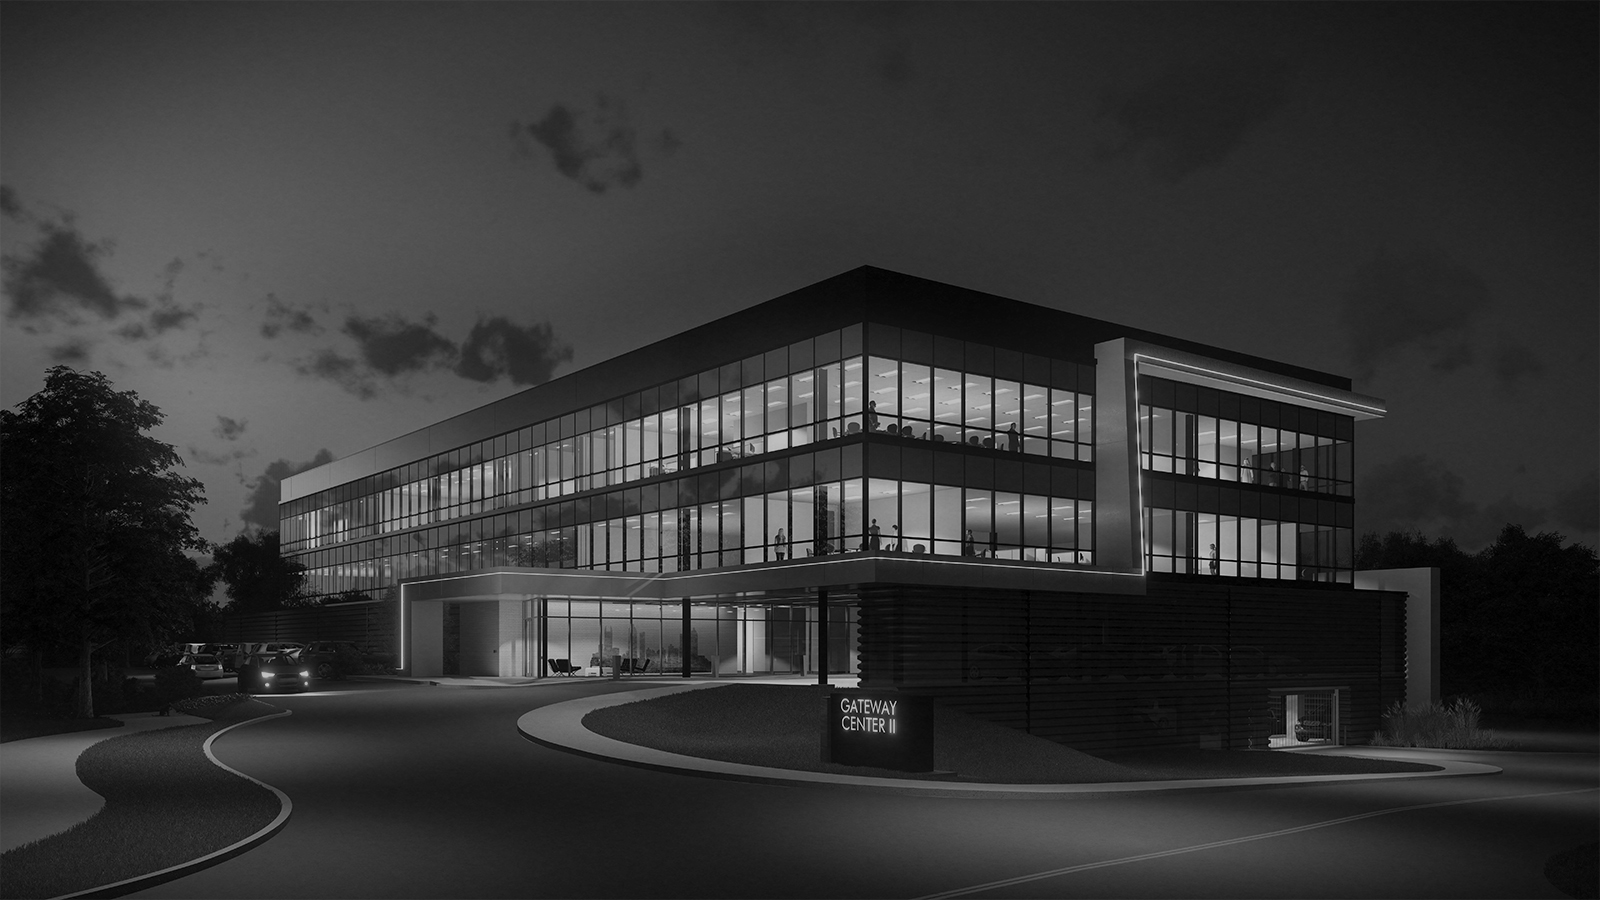 stylized, B&W photo of 5G STUDIO  - GATEWAY CENTER II